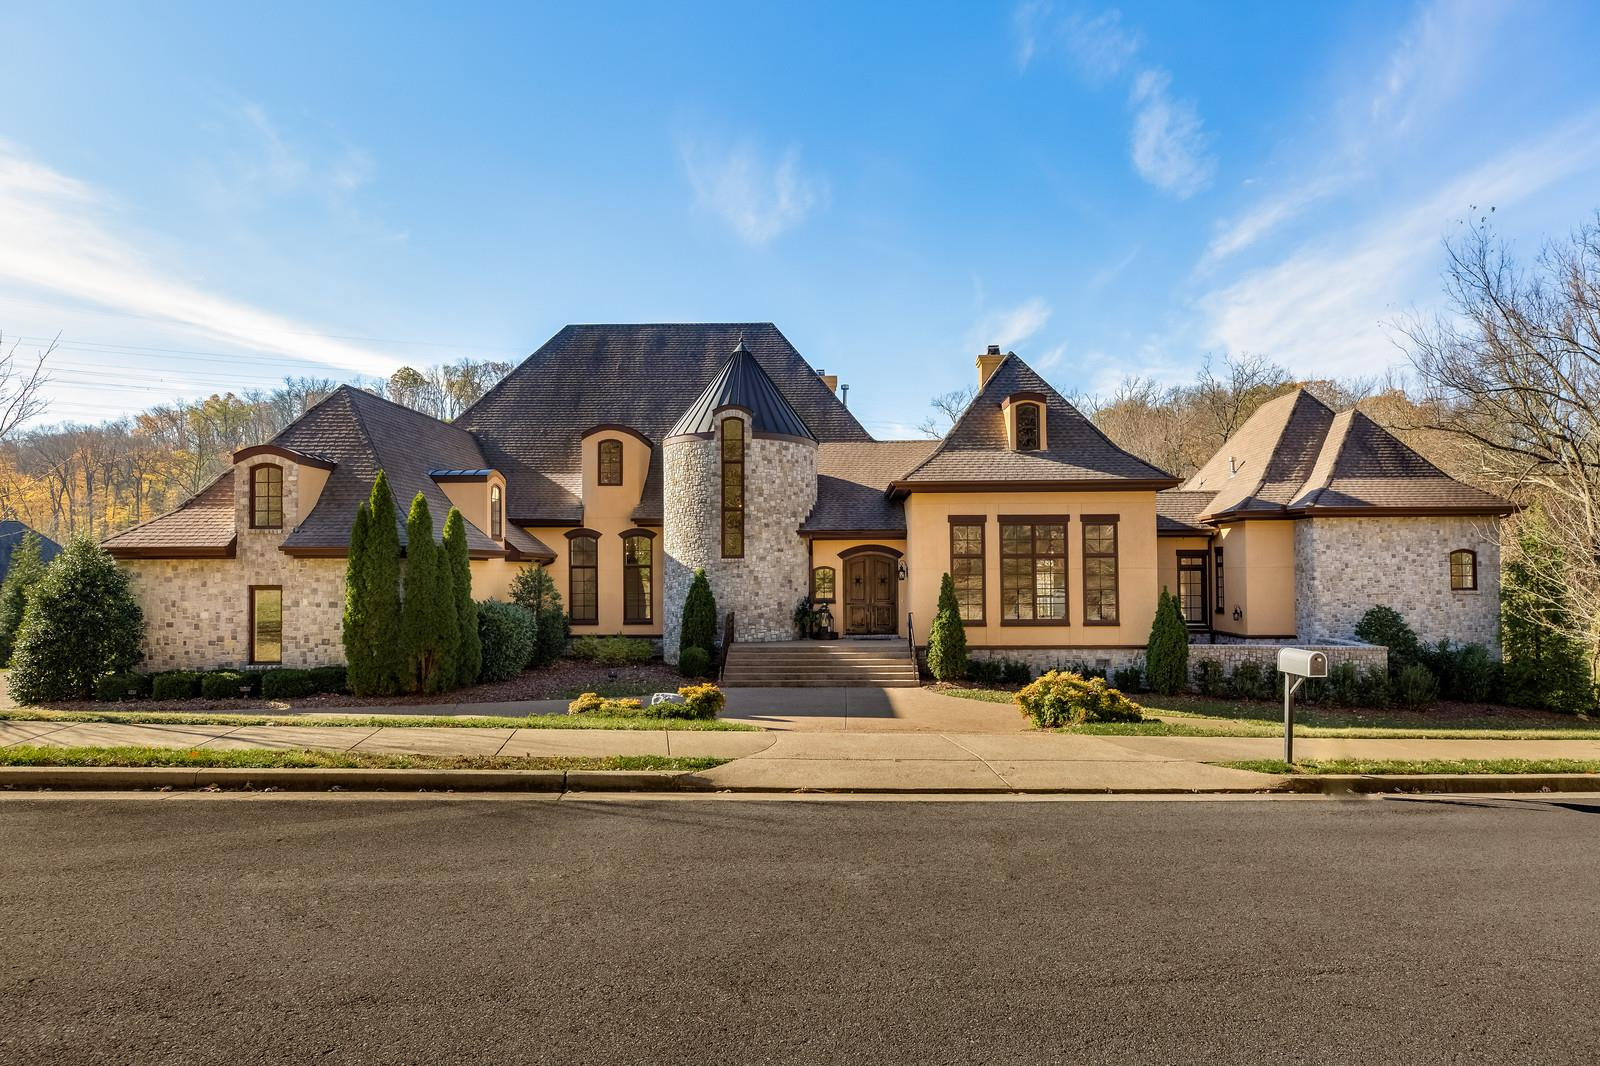 Nashville Real Estate Search Results - Benchmark Realty